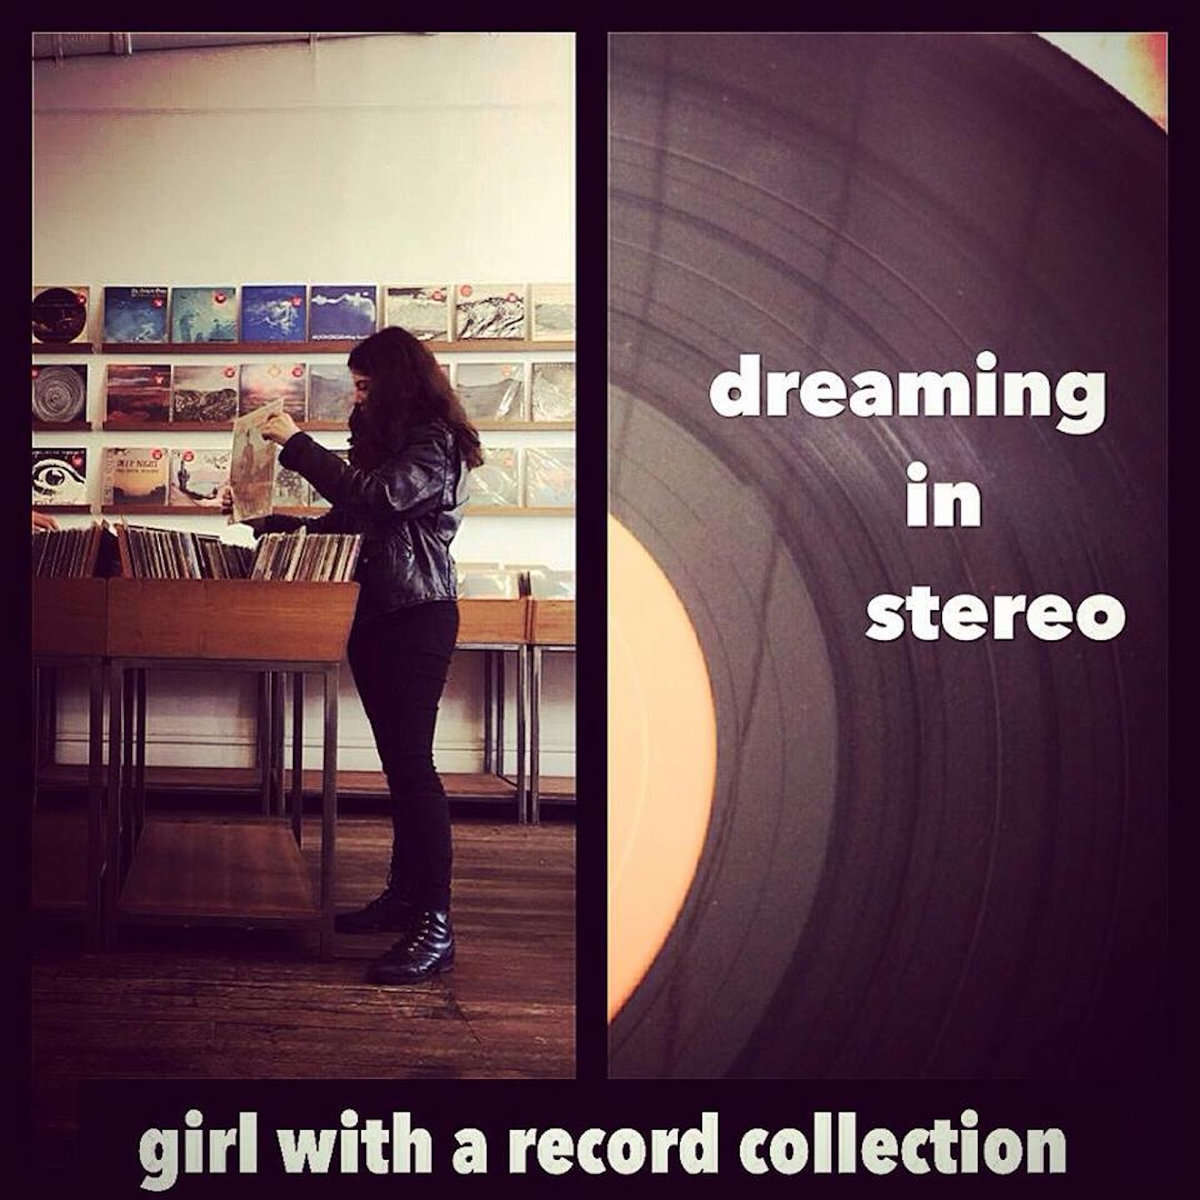 dreaming in stereo girl with a record collection